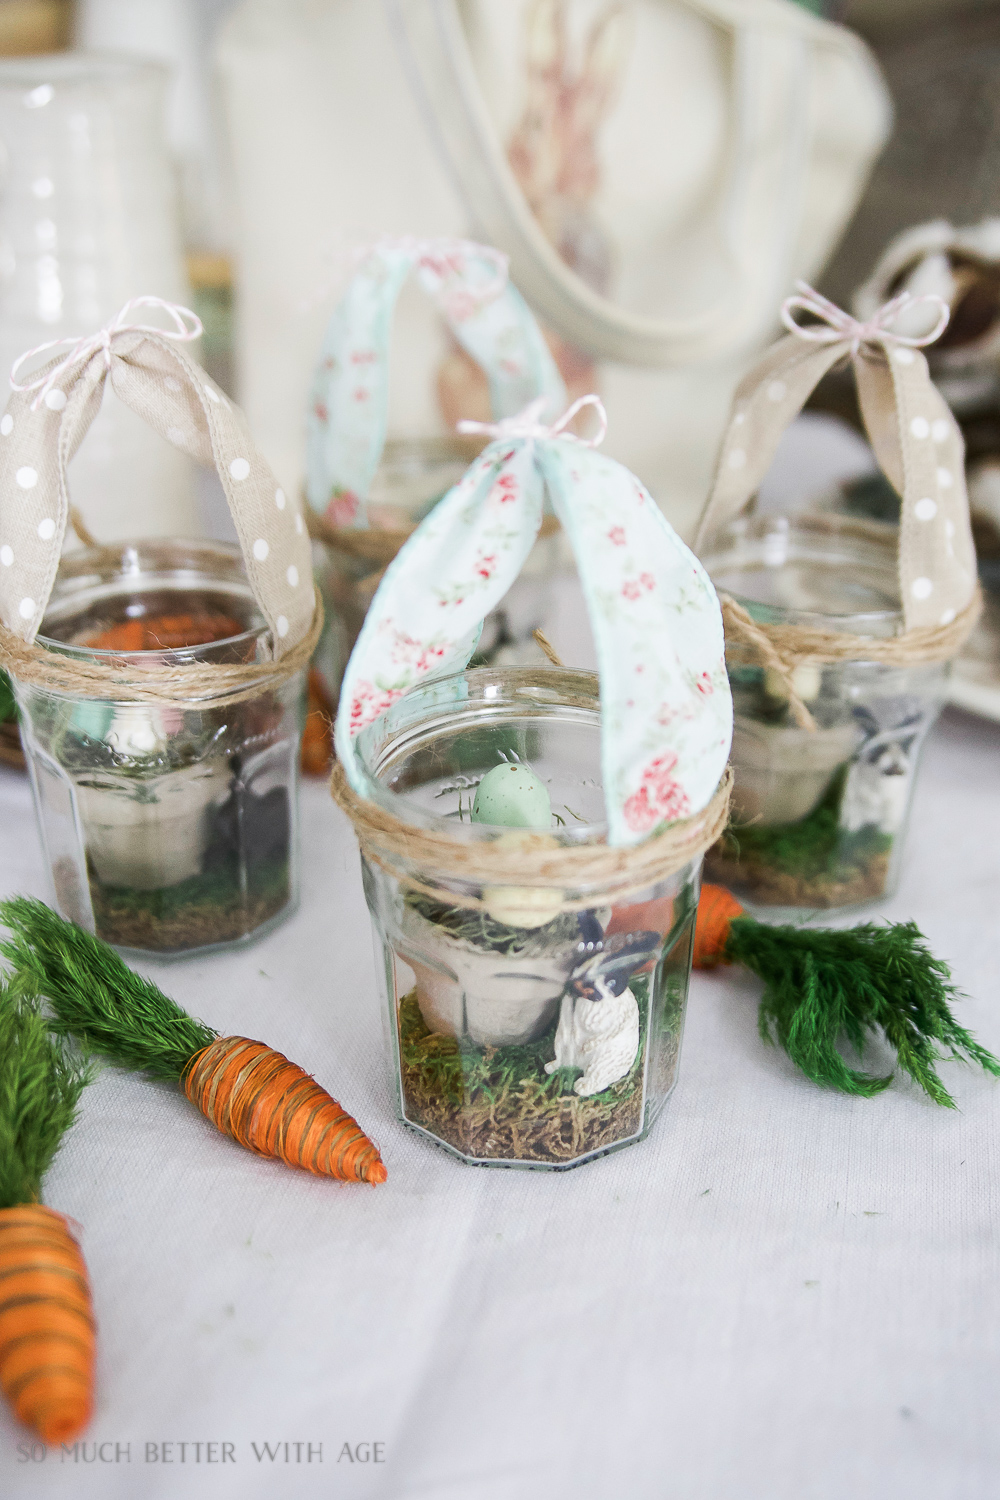 So Much Better With Age - Glass Easter Jars with Bunny Jars